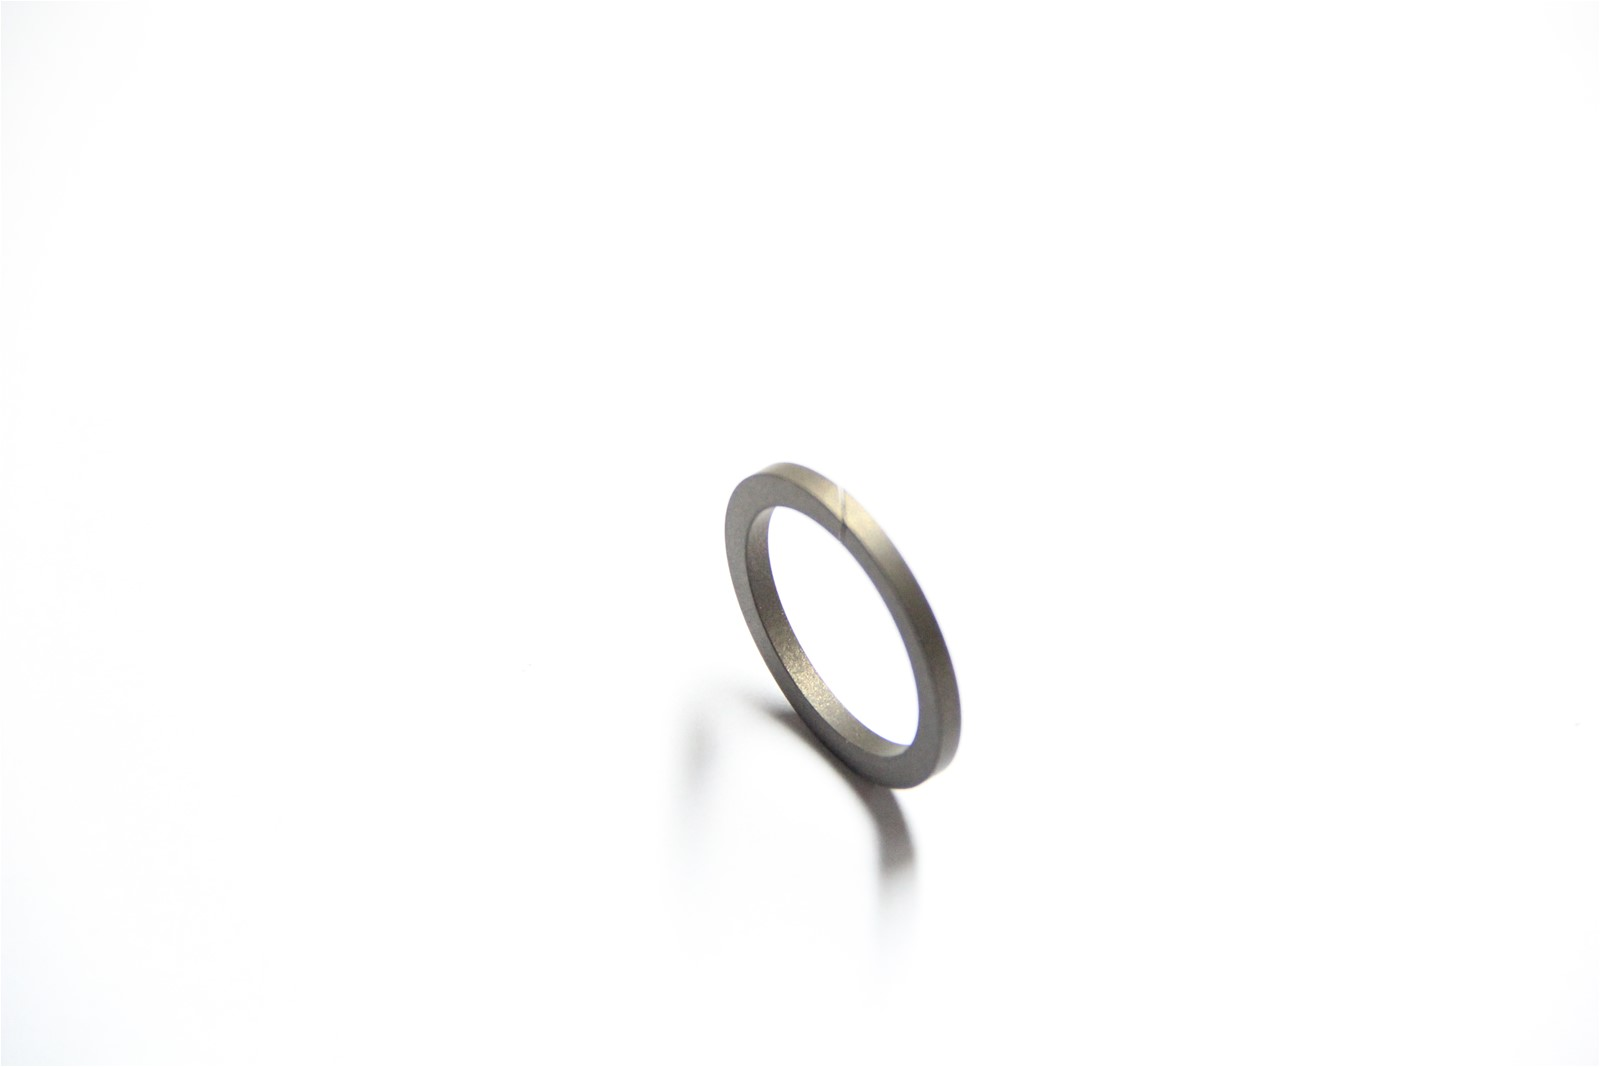 Ptfe back up rings in brown purchasing souring agent